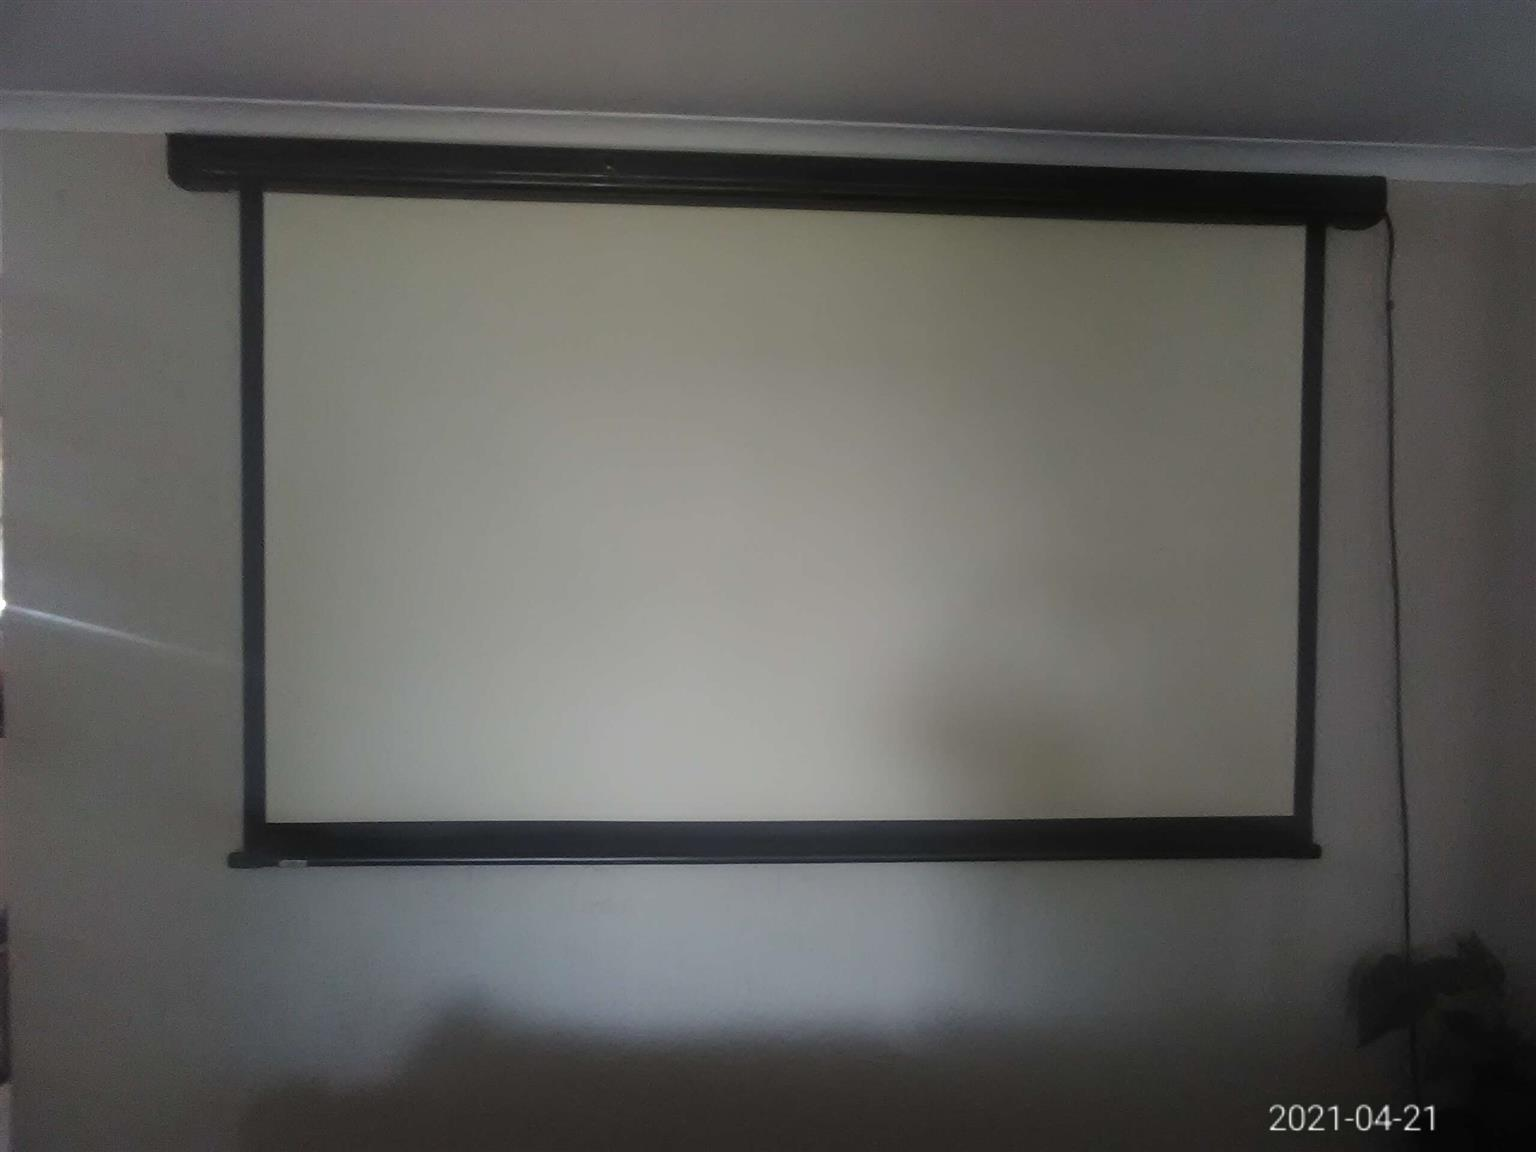 NEW ACER PROJECTOR(PDX1127i) +USED 2.1m×1.65m remote screen.